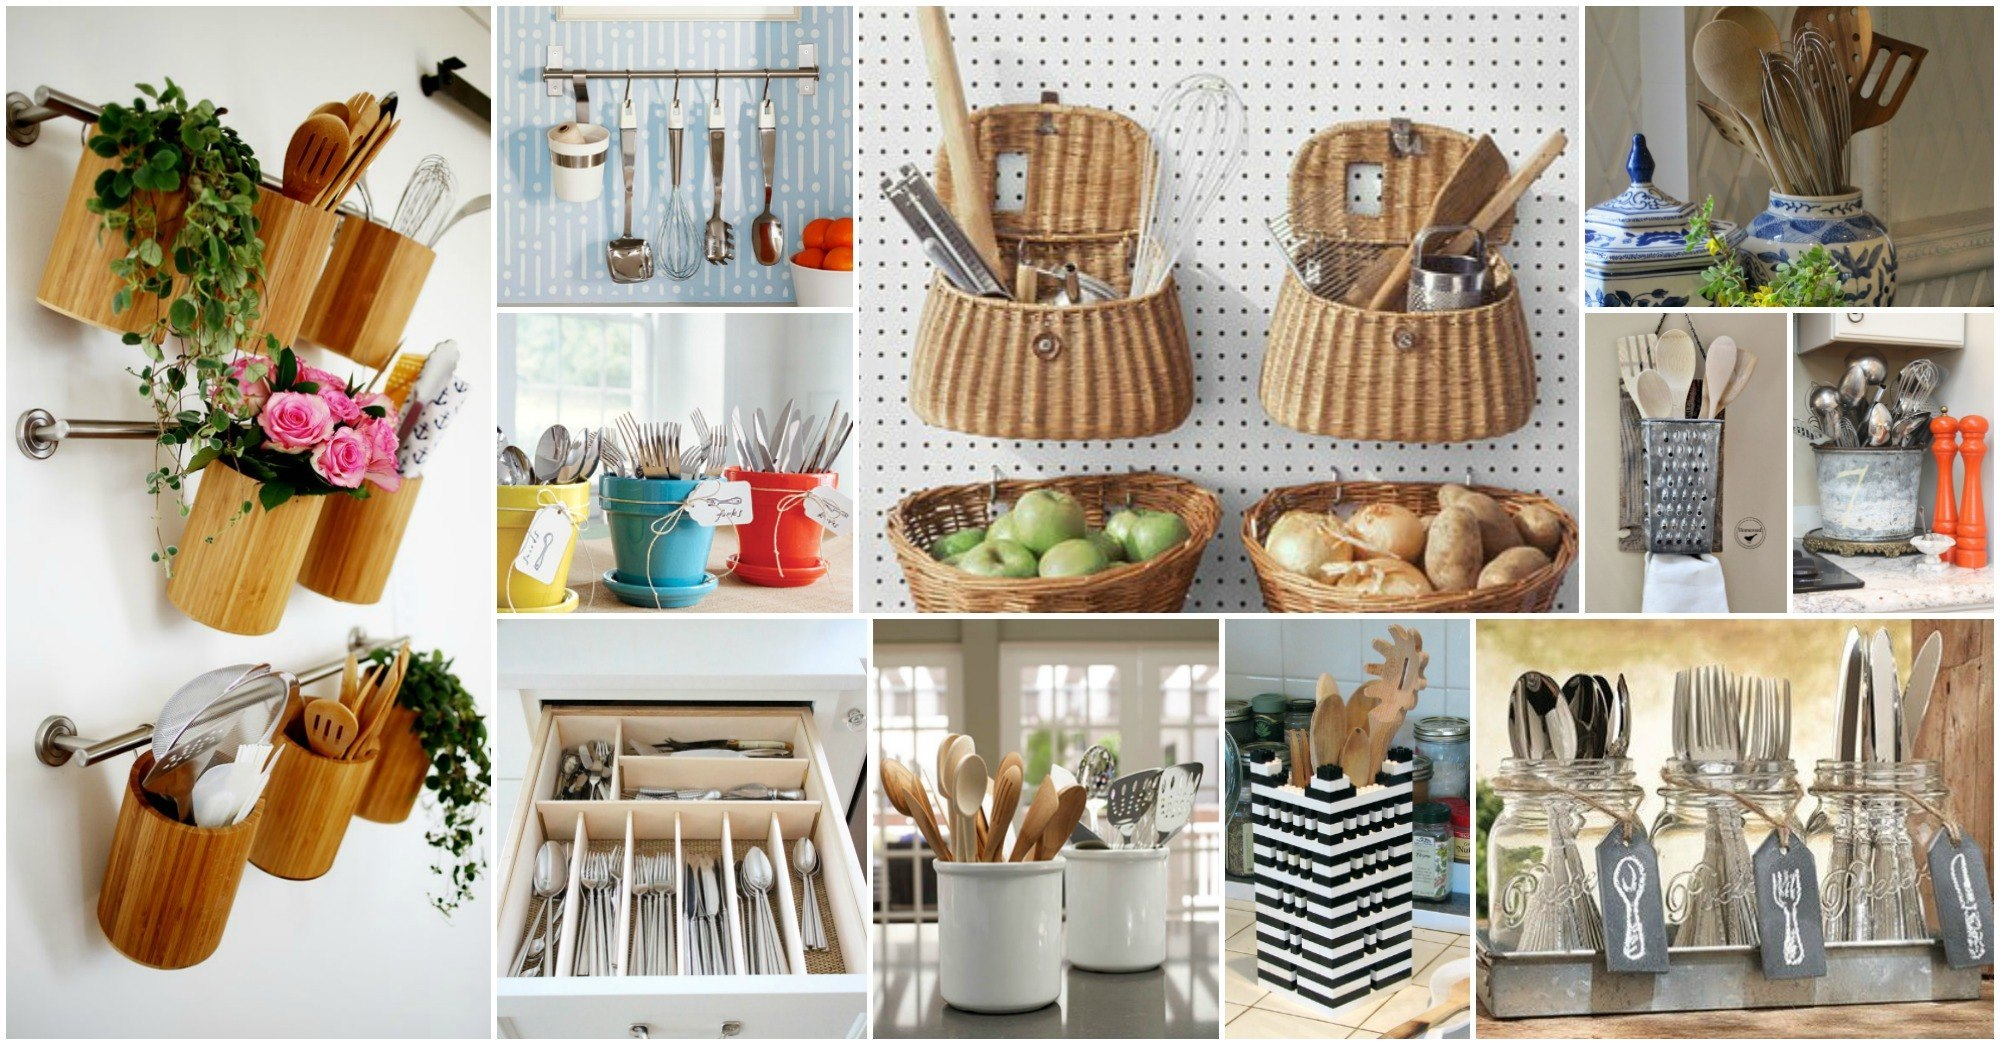 Best Site To Buy Kitchen Utensils